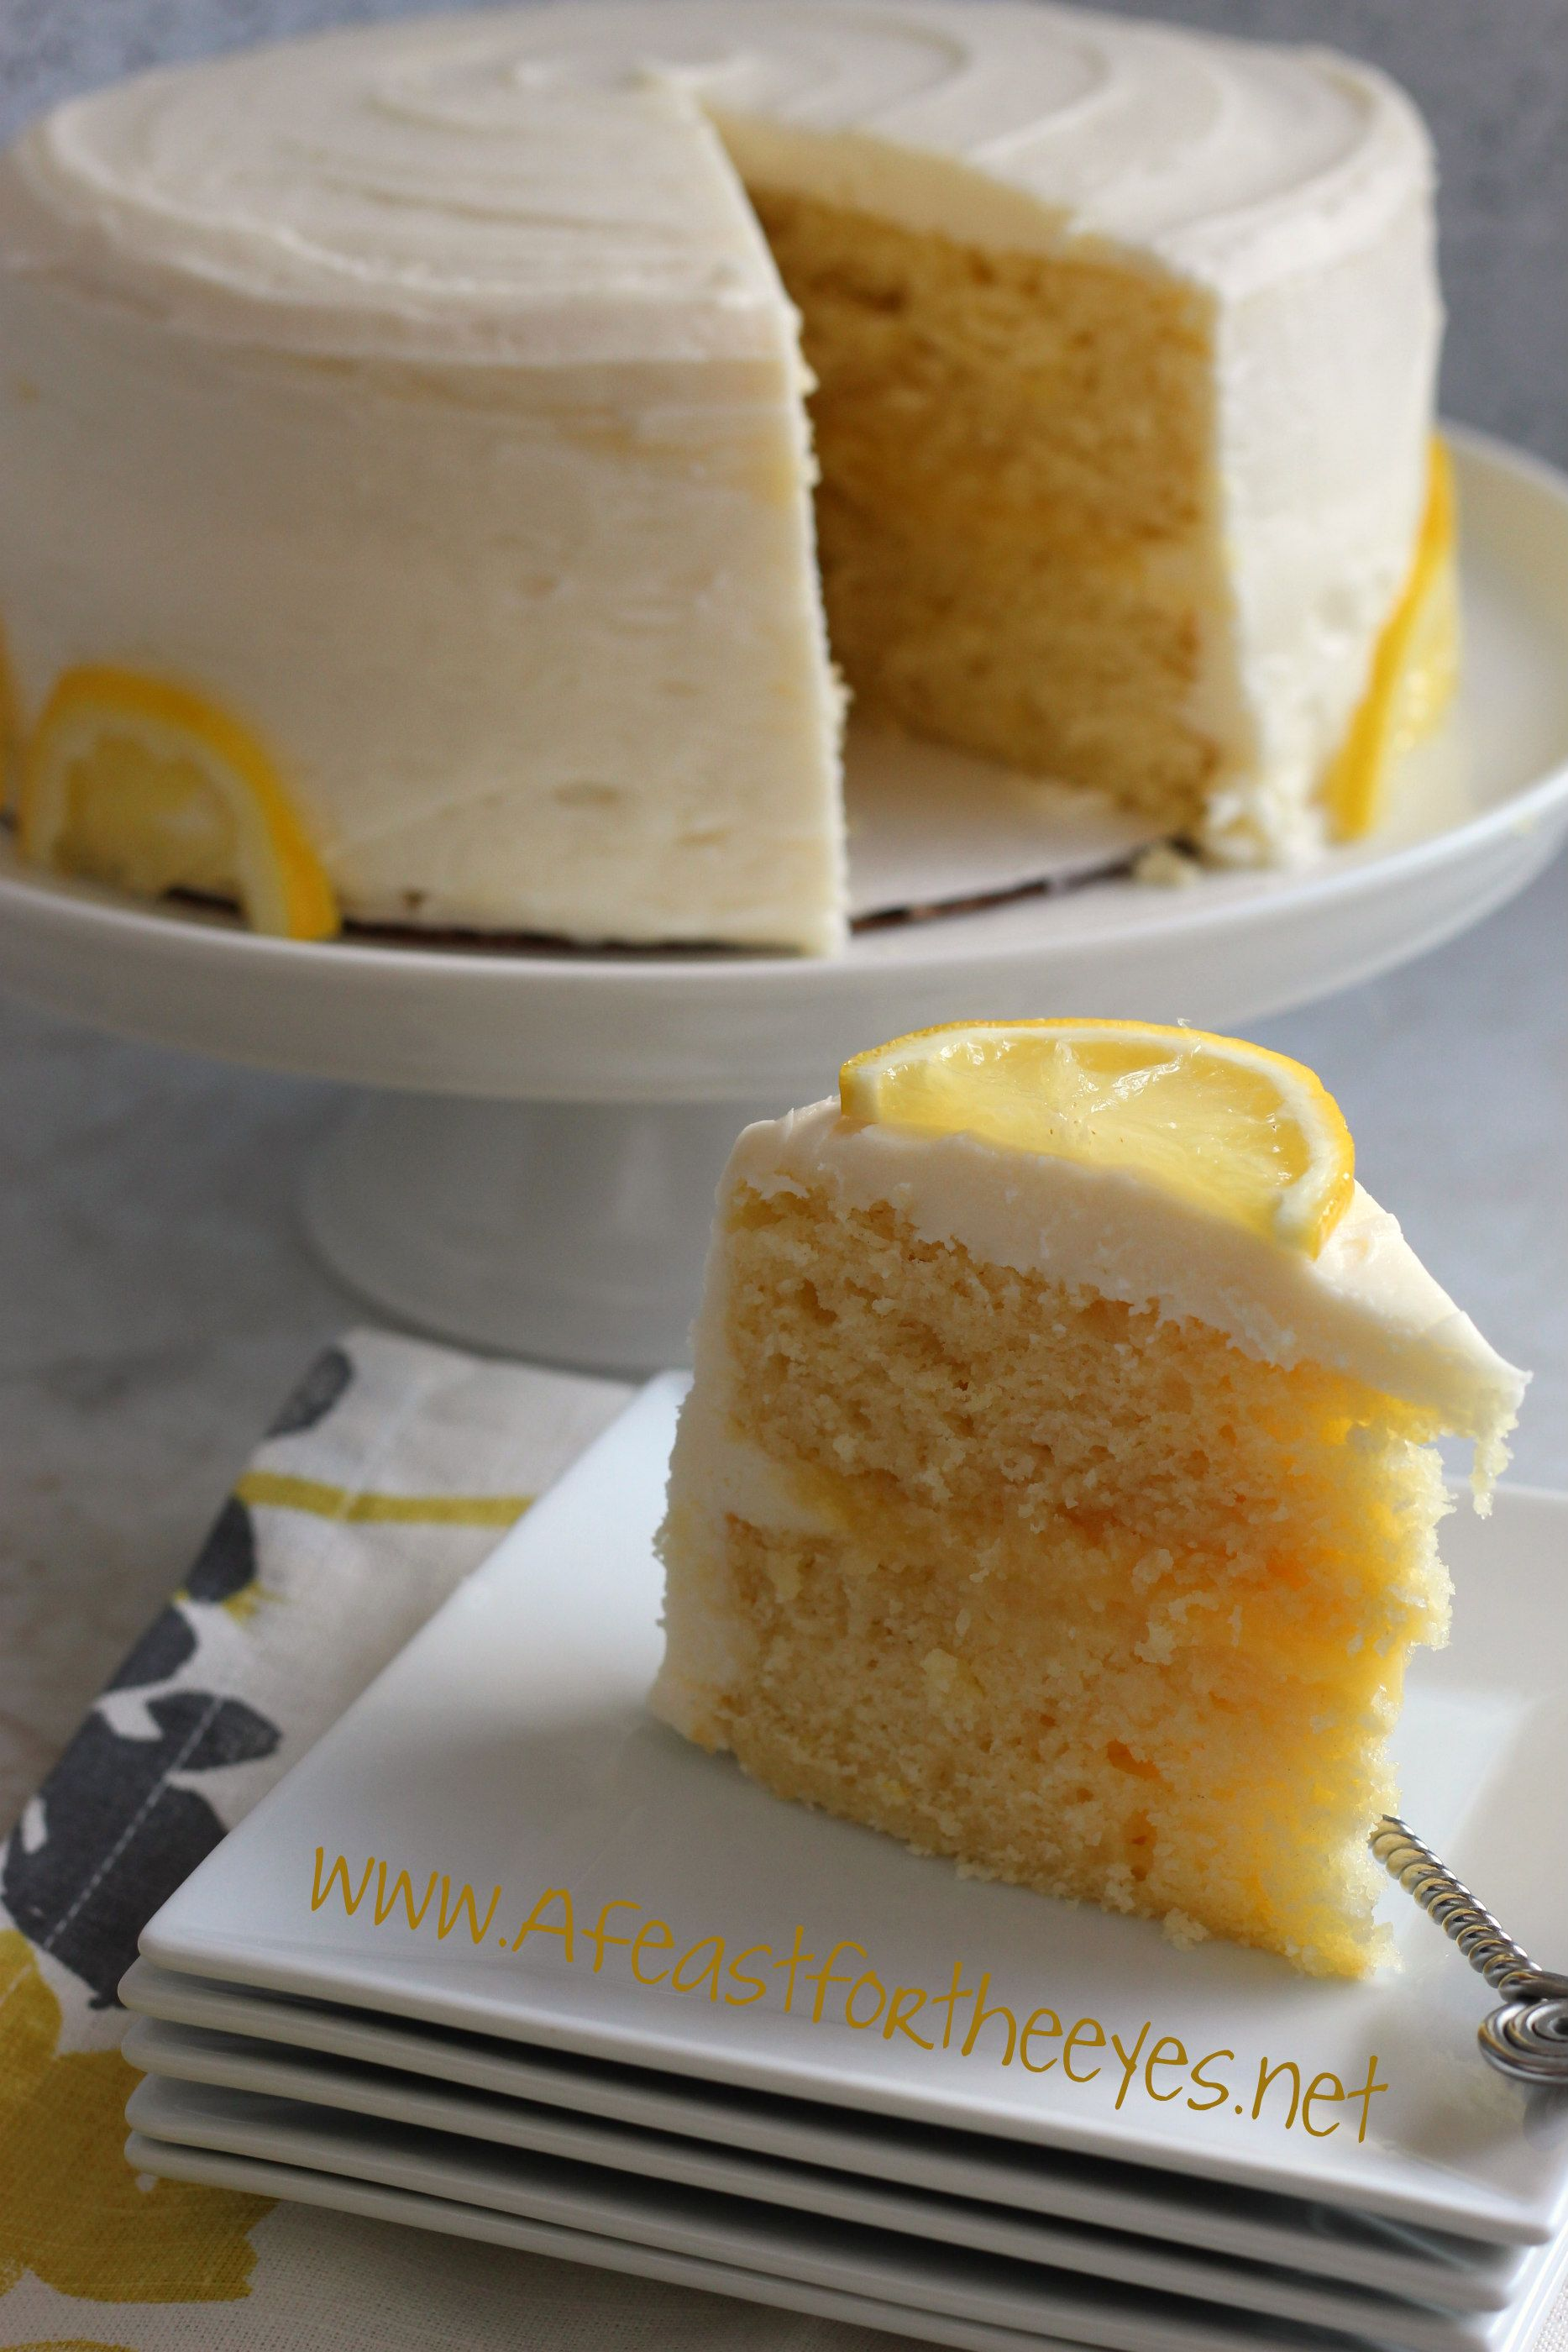 Lemon Buttermilk Layer Cake With Lemon Curd And Cream Cheese Frosting A Feast For The Eyes Recipe Lemon Layer Cakes Lemon Cream Cake Lemon Cream Cheese Frosting